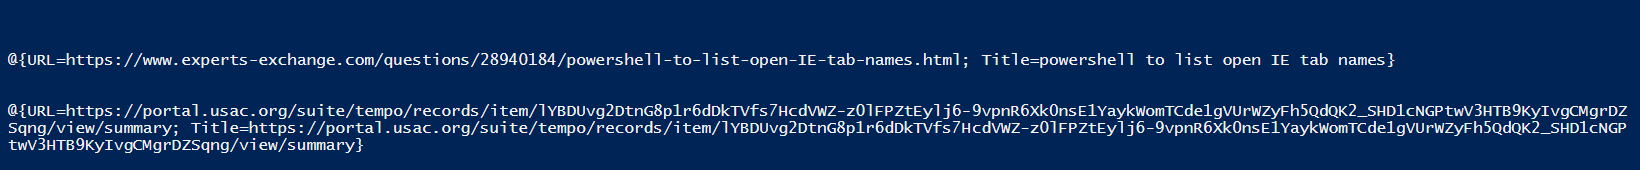 powershell to list open IE tab names